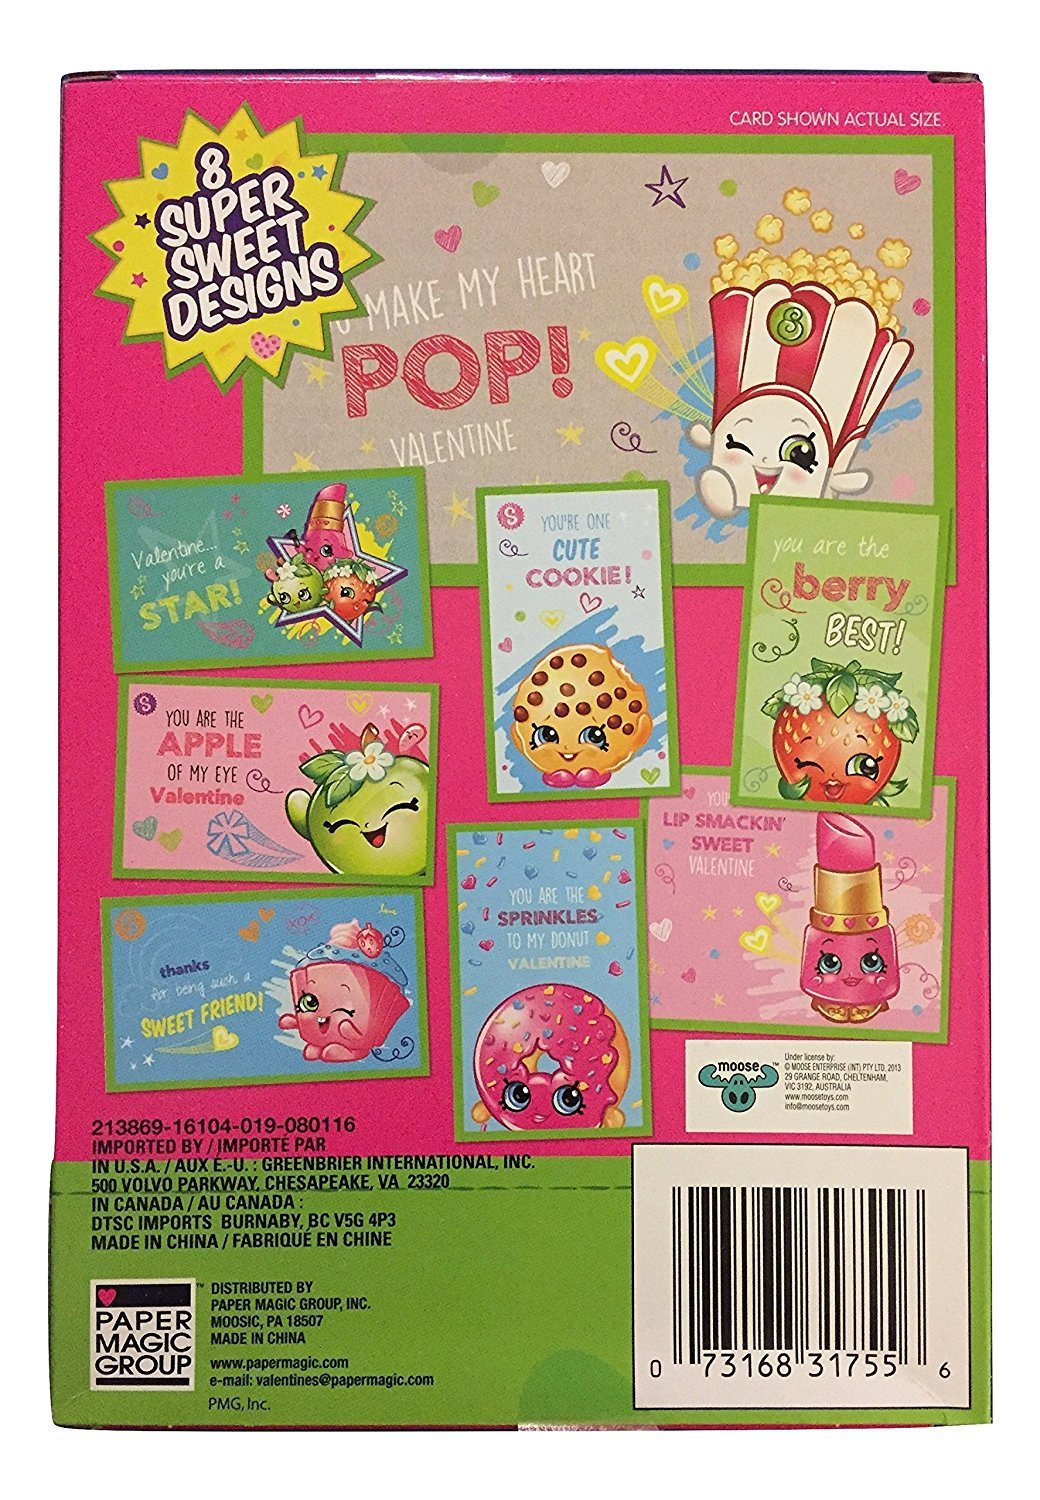 Amazon shopkins 32 valentines cards for kids 8 designs paper amazon shopkins 32 valentines cards for kids 8 designs paper magic for ages 3 and up office products m4hsunfo Gallery